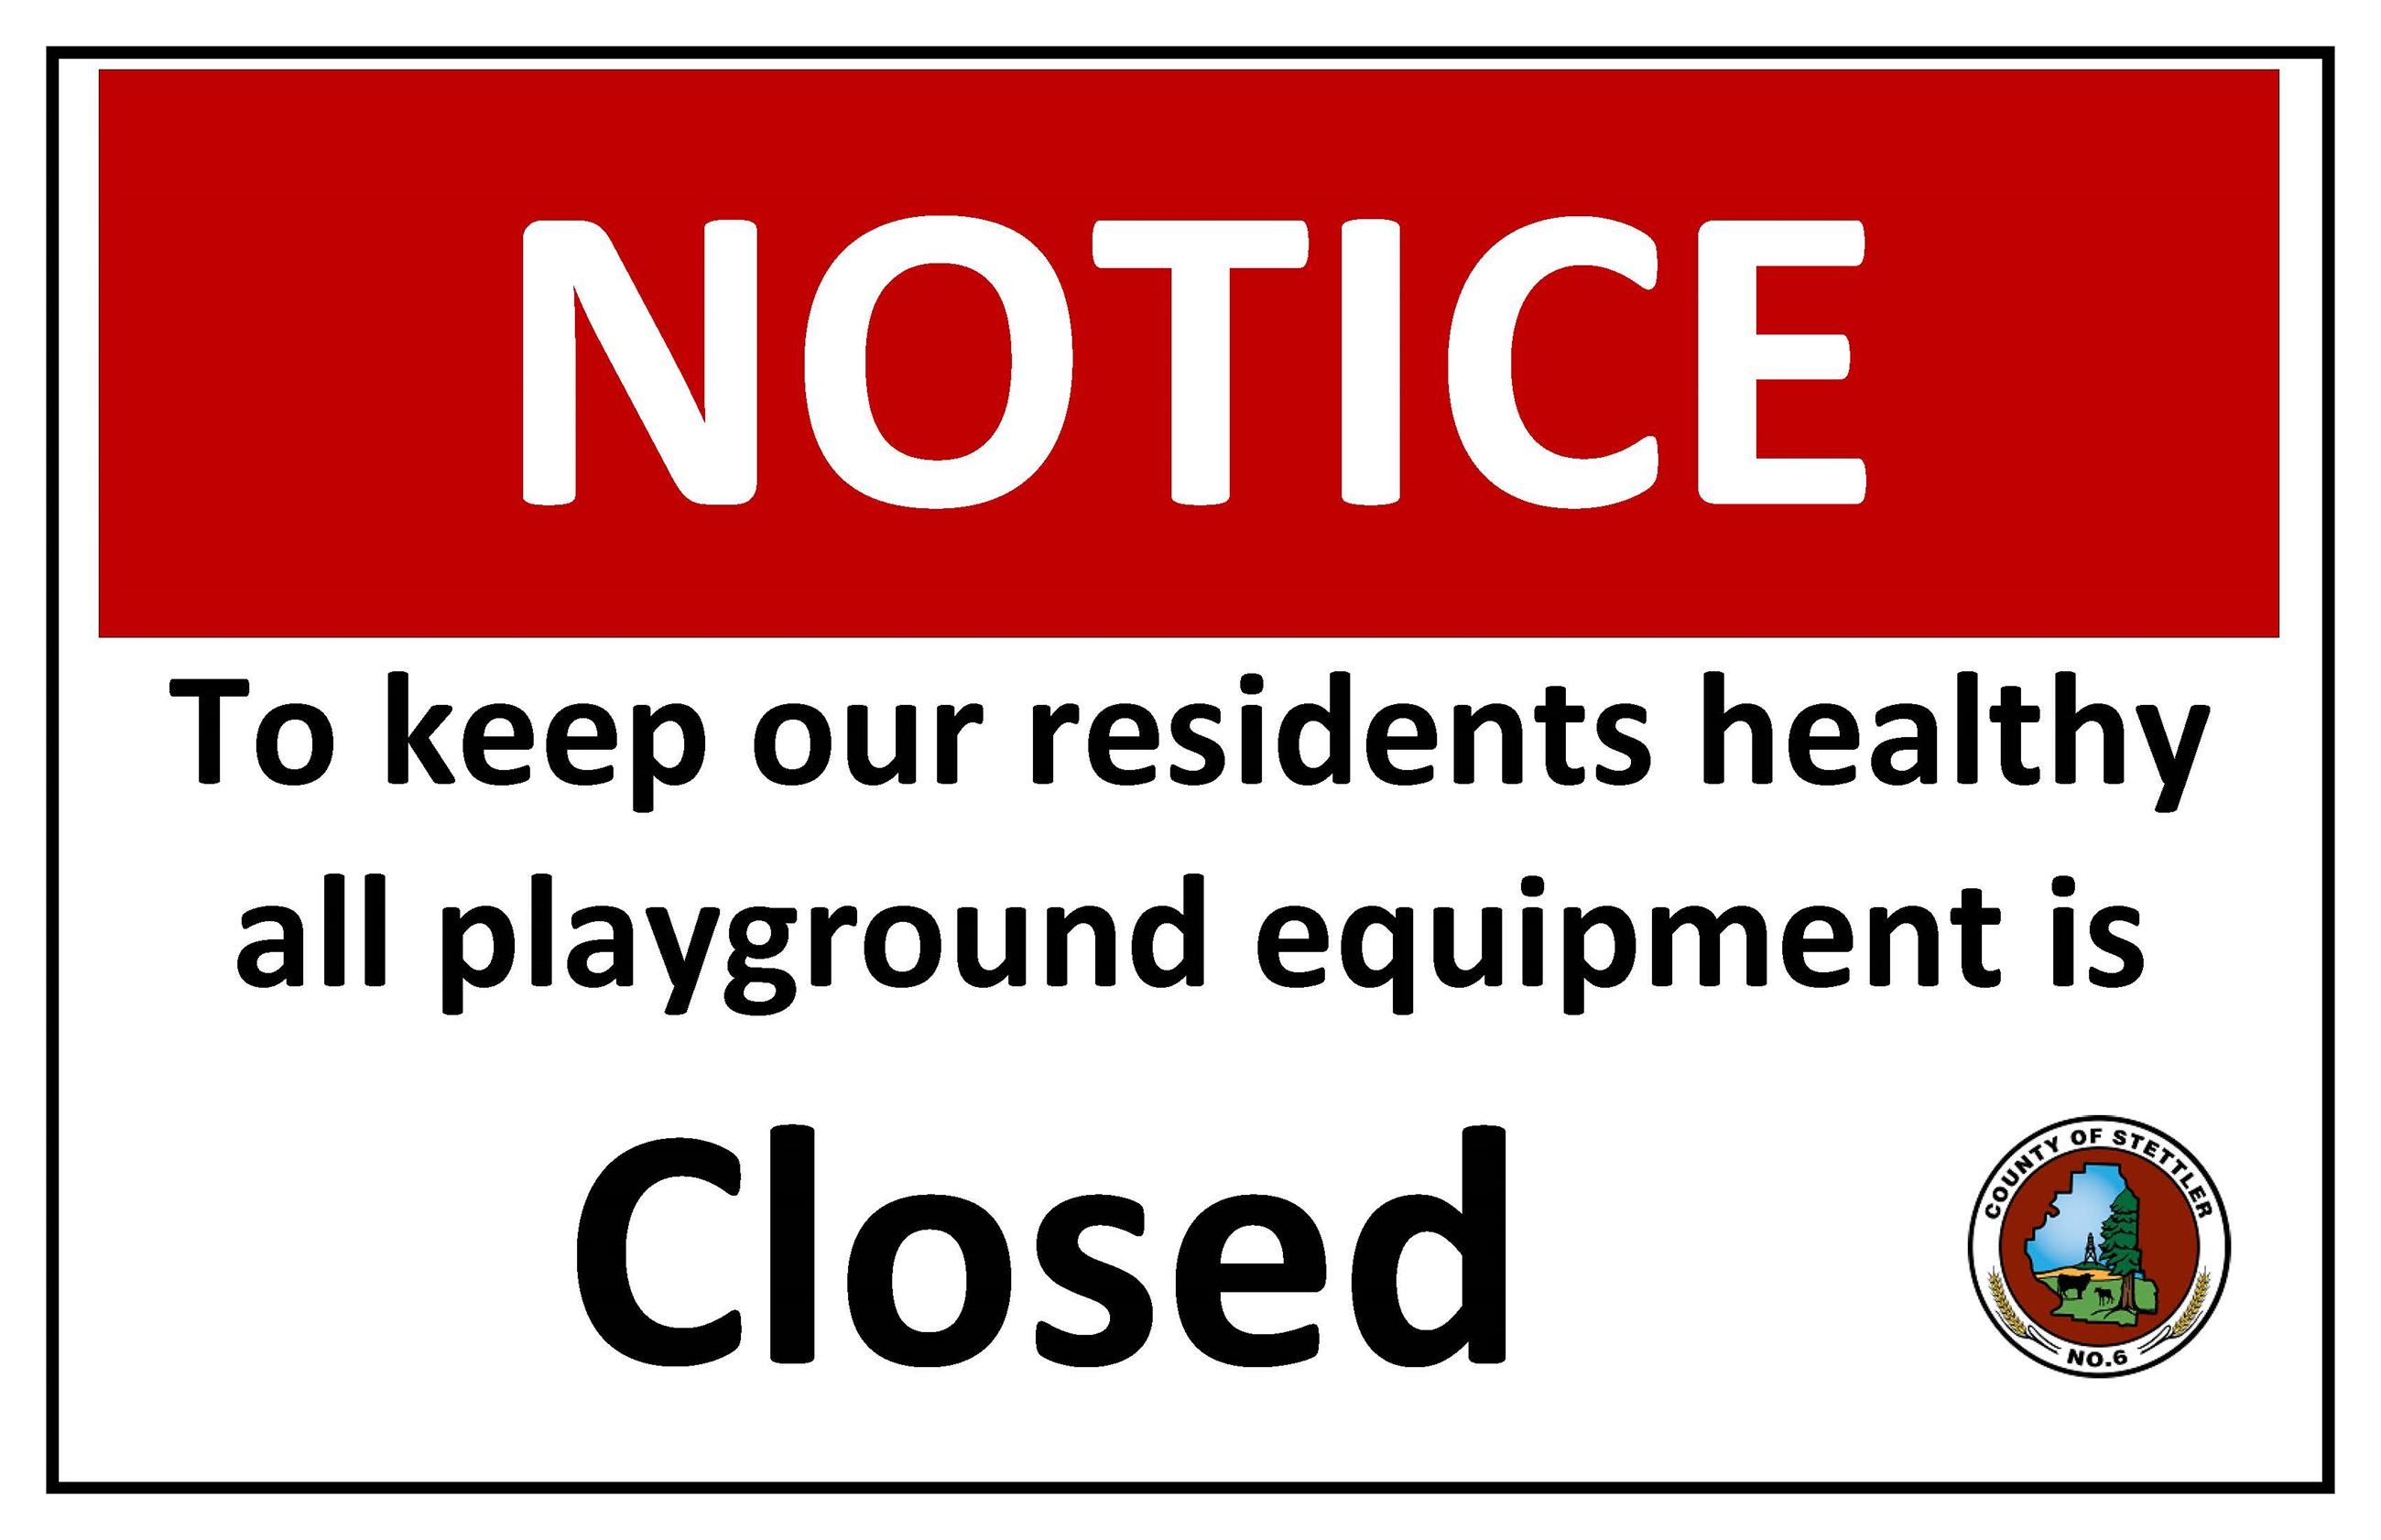 COVID 19 Playground Closed Sign